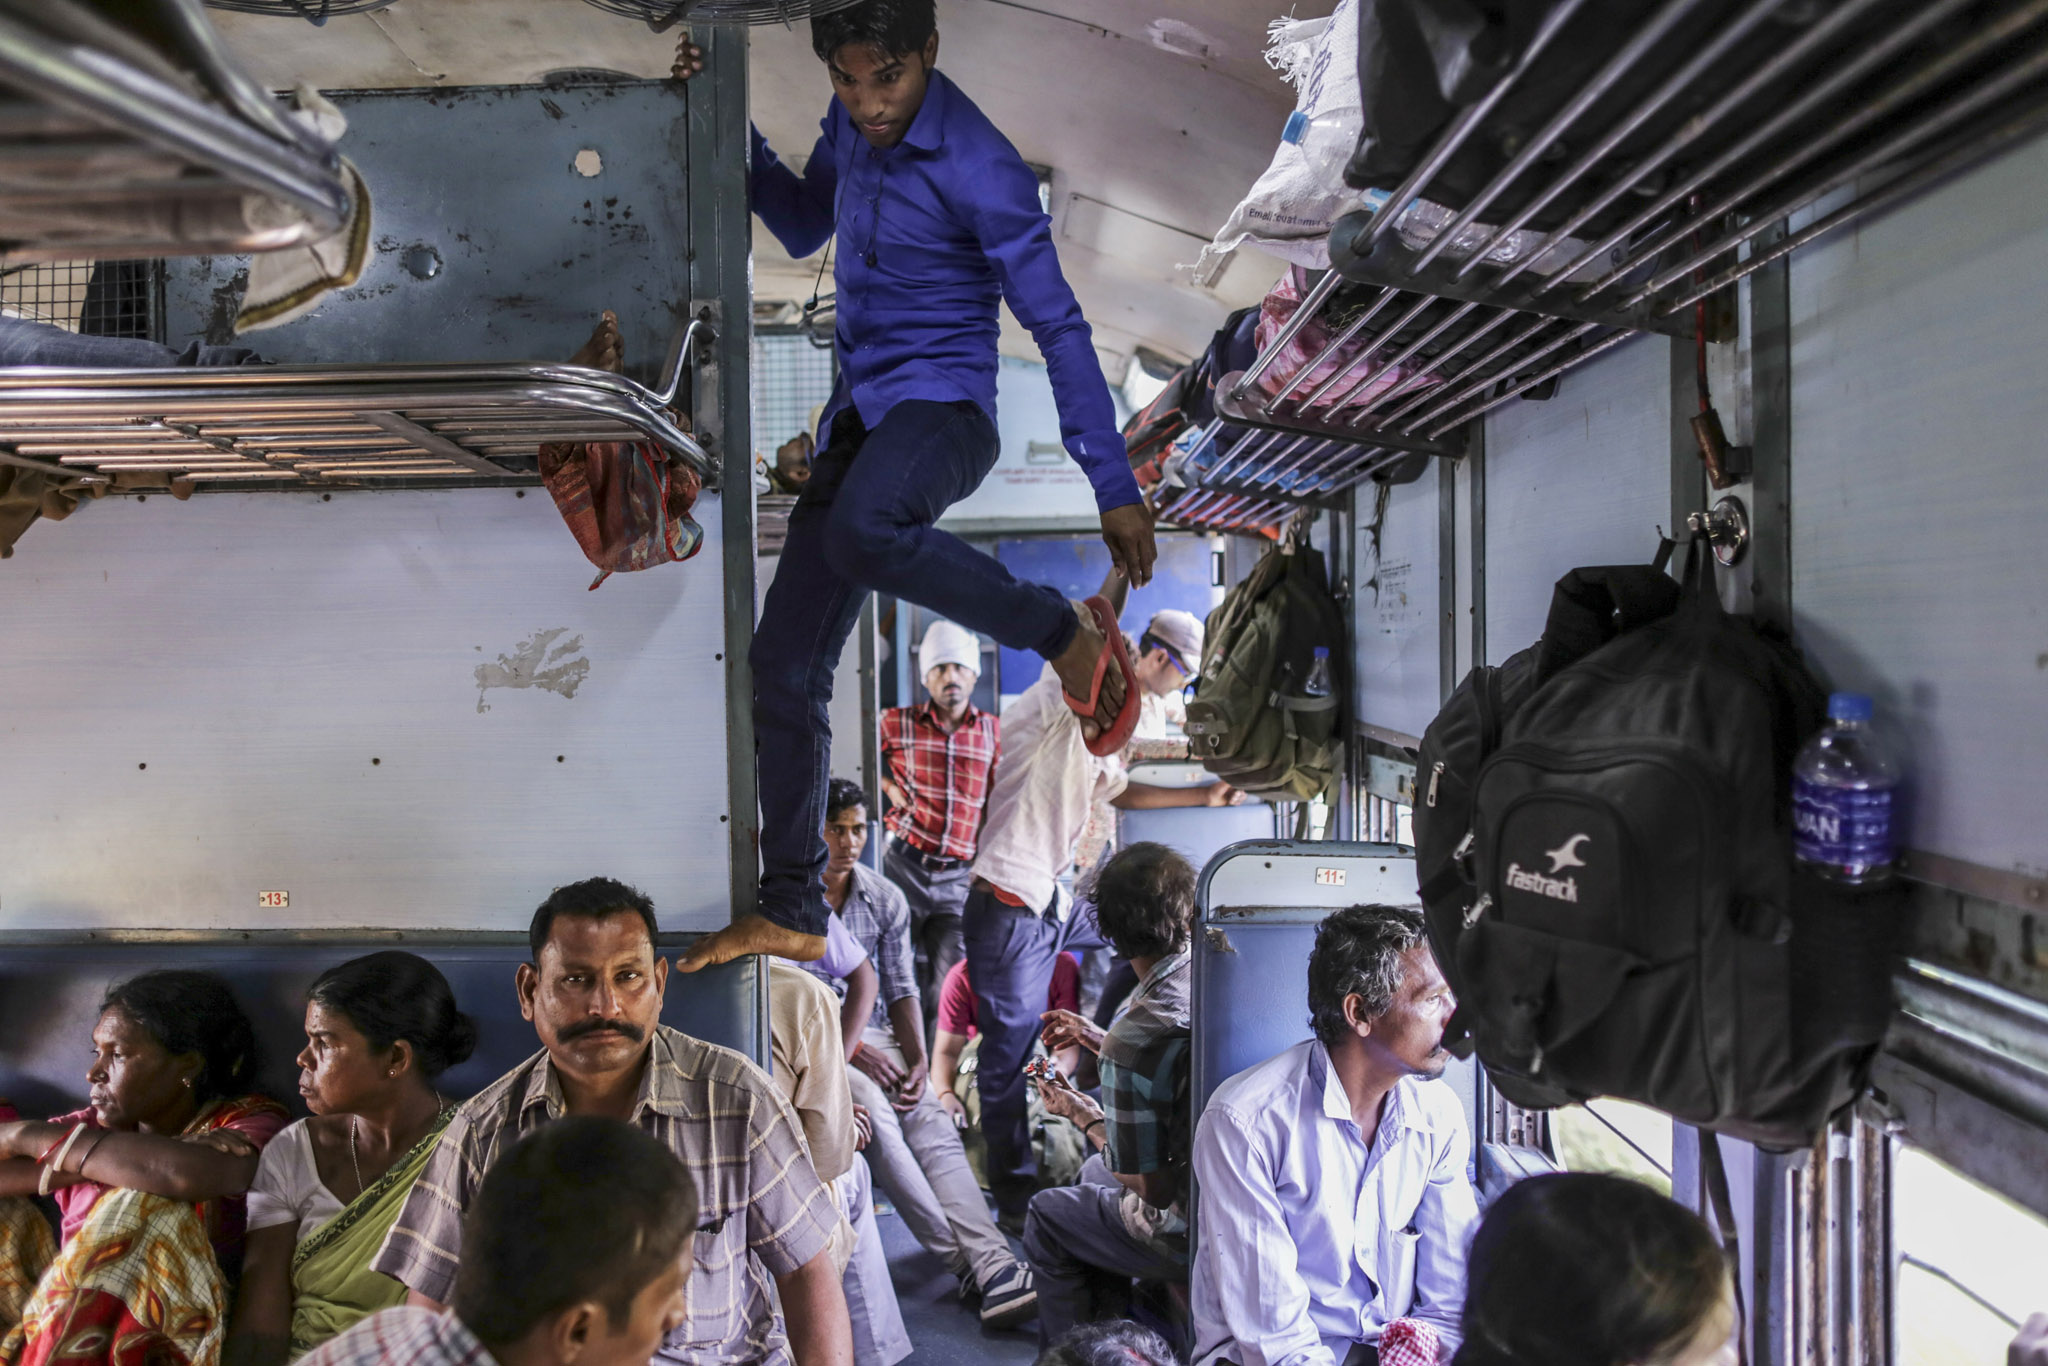 Dysfunction Junction: Railway Puts India on Slow Train to Future...A passenger climbs on a seat and luggage racks on the Kalka Mail train awhile traveling from Fatehpur station to Allahabad Junction station near Fatehpur, Uttar Pradesh, India, on Tuesday, Sept. 29, 2015. The 162-year-old system is Asia's oldest. It is the nation's economic artery, employer of more than 1.3 million people, and the government's most intractable problem. Unclogging its 65,000 kilometers of track is vital to any effort to develop the economy. Photographer: Dhiraj Singh/Bloomberg